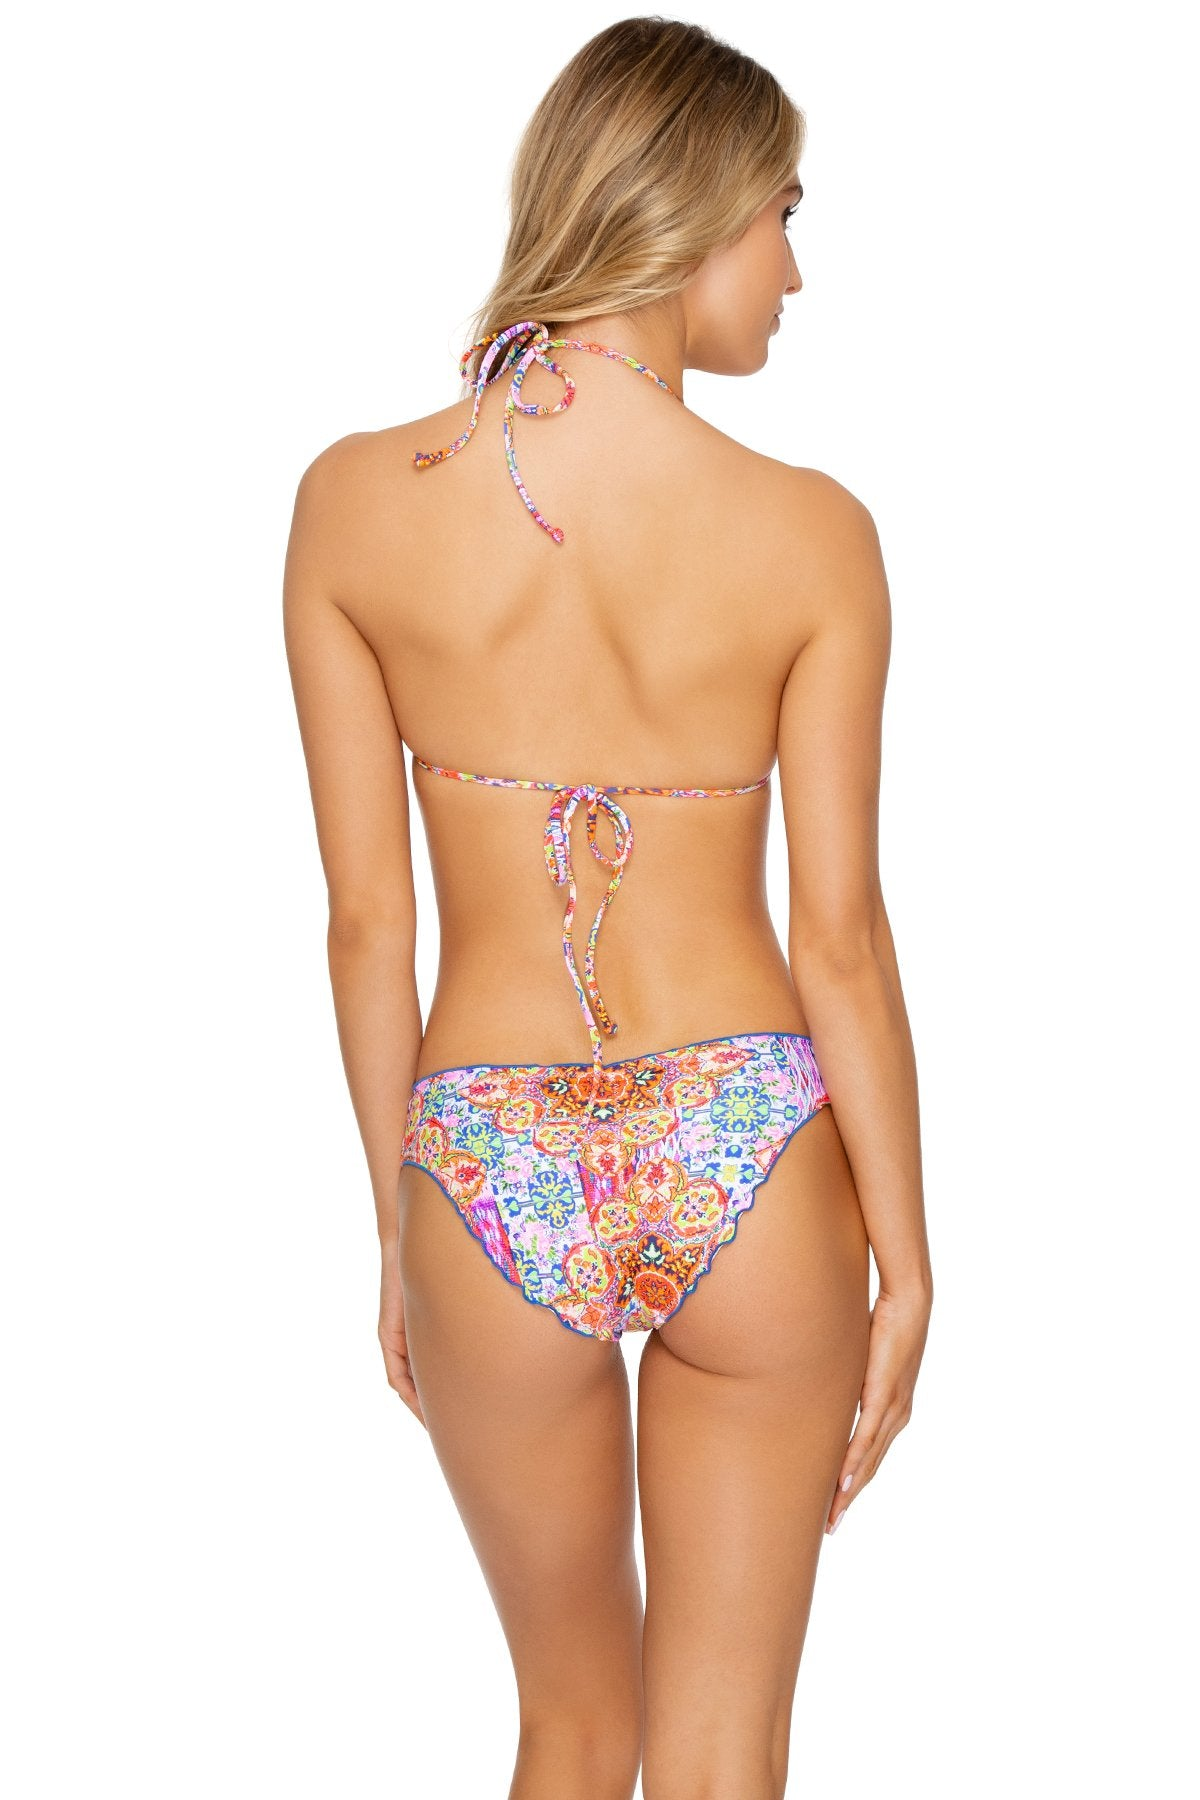 RAYANDO EL SOL - Bandeau Top & Seamless Full Ruched Back Bottom • Multicolor